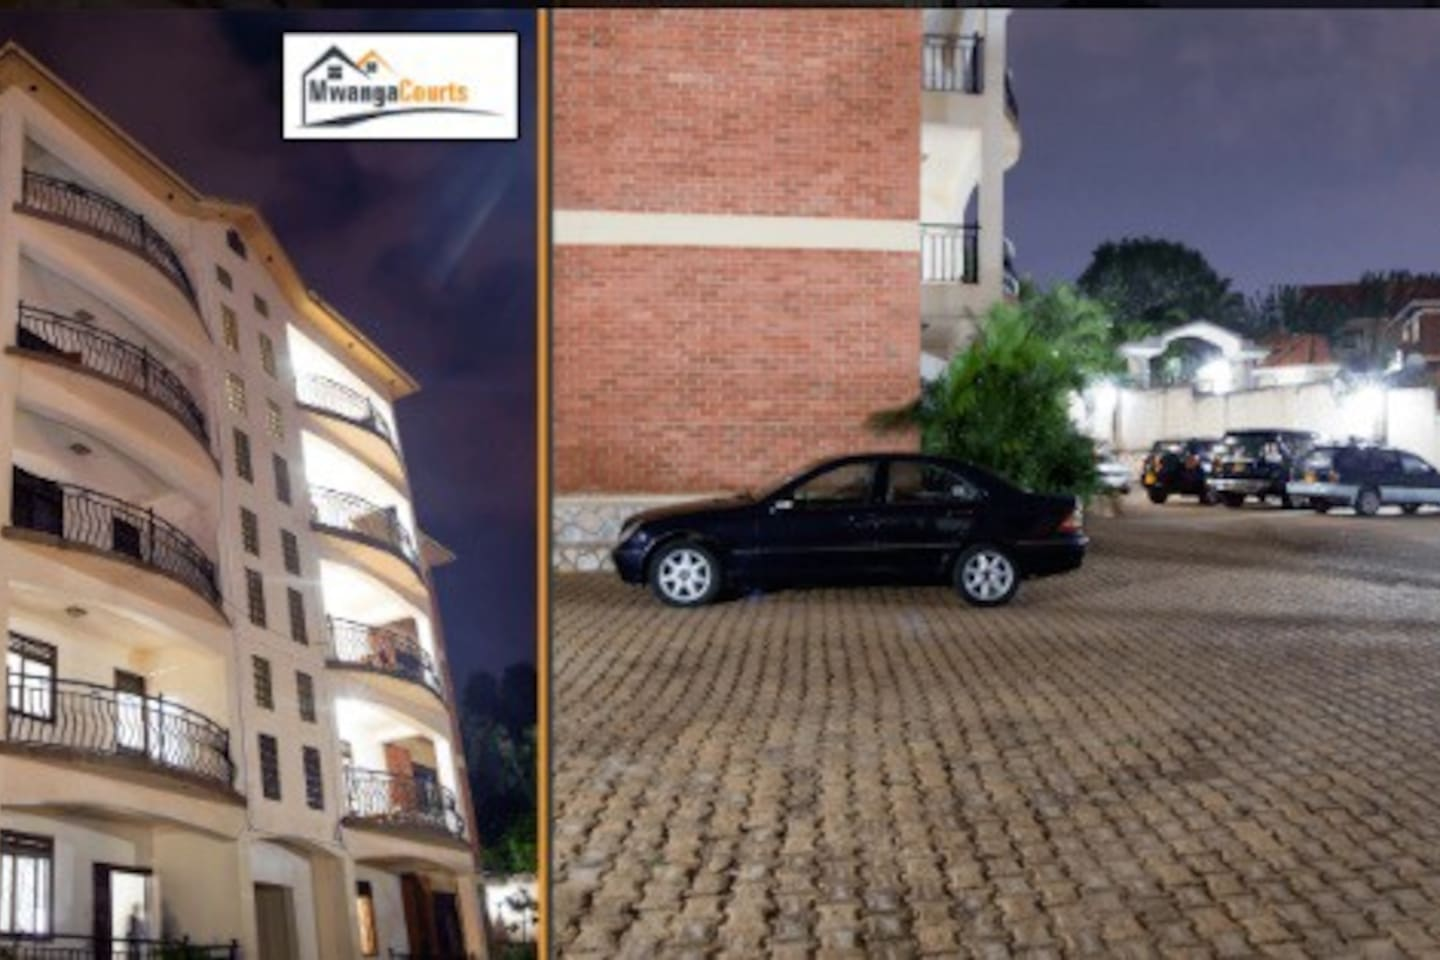 Mwanga Courts is located (6)six kilometers from the city centre in the upscale suburbs of Muyenga. We offer comfort, luxury and security suitable for our guests. Our guests include expatriates, returning nationals, families on holiday, persons on business trips as well as tourists. The apartments are suitable for families with children as well as single persons. You are welcome to join us on a short or long term home away from home experience.  We have eight two bedroom and two one bedroom modern fully furnished apartments. Mwanga courts are conveniently near public transport, hospitals, institutions, restaurants and shopping centre. We are located in a residential area thus ensure a calm, private and secure neighborhood.